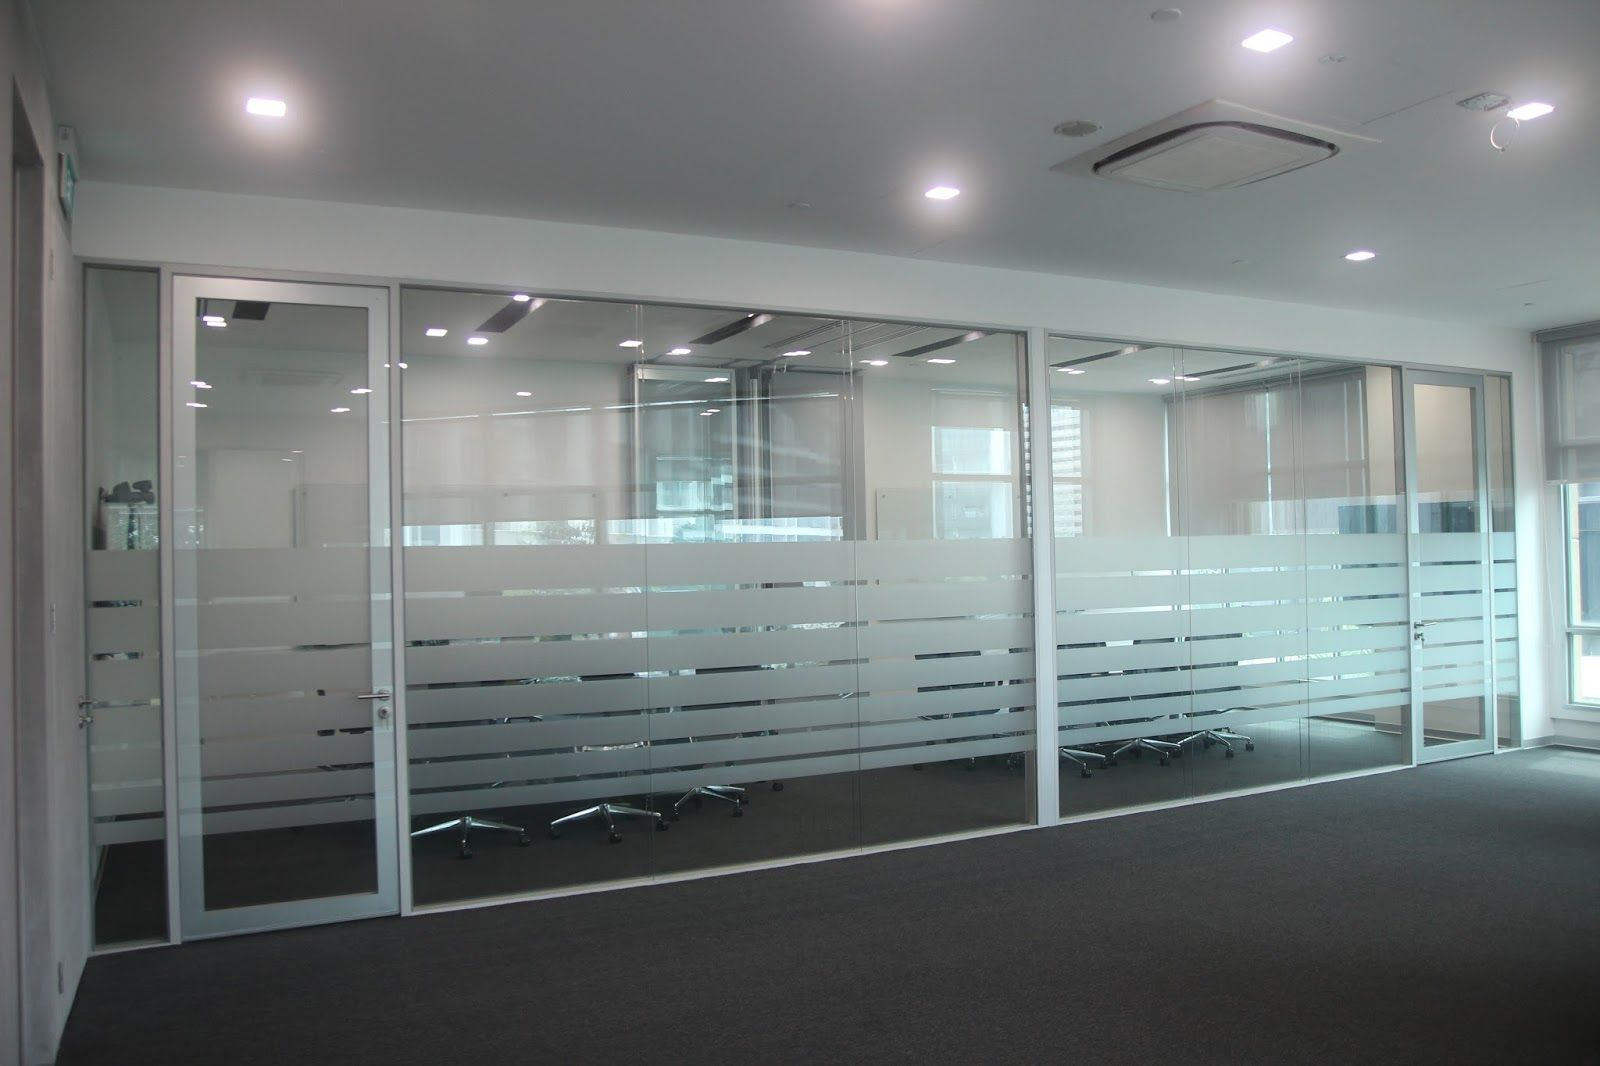 Office glass door sticker designs for Office glass door entrance designs